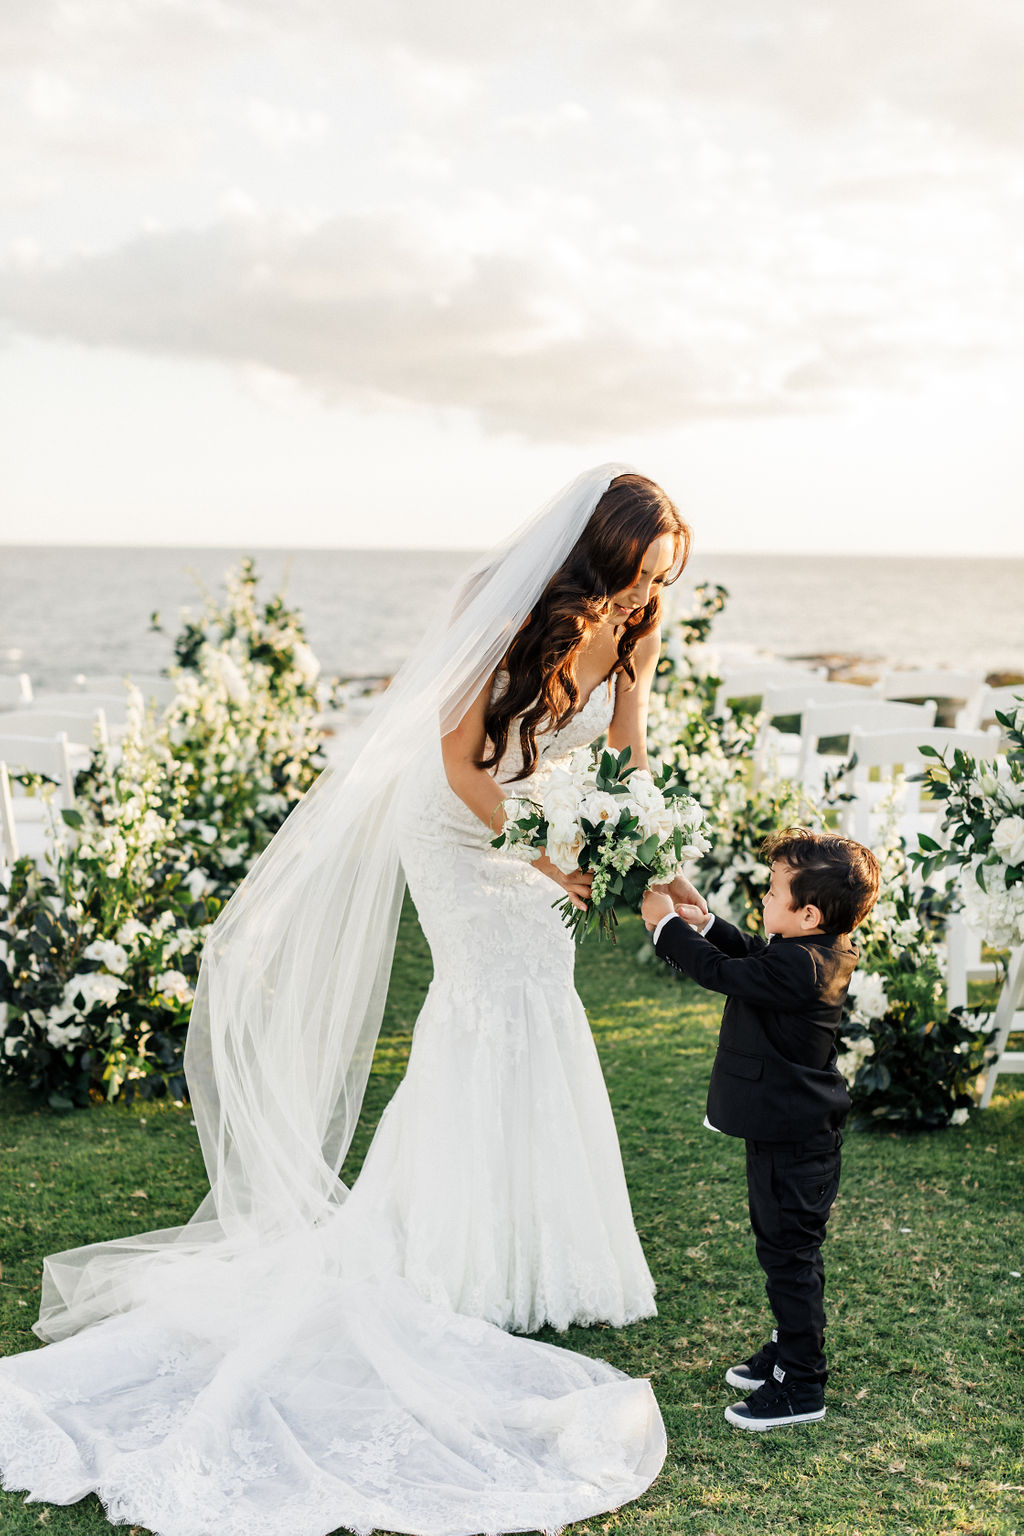 Cabo_Wedding_Jana_williams_blooms_breesa_lee_luxury-destination_8.jpg